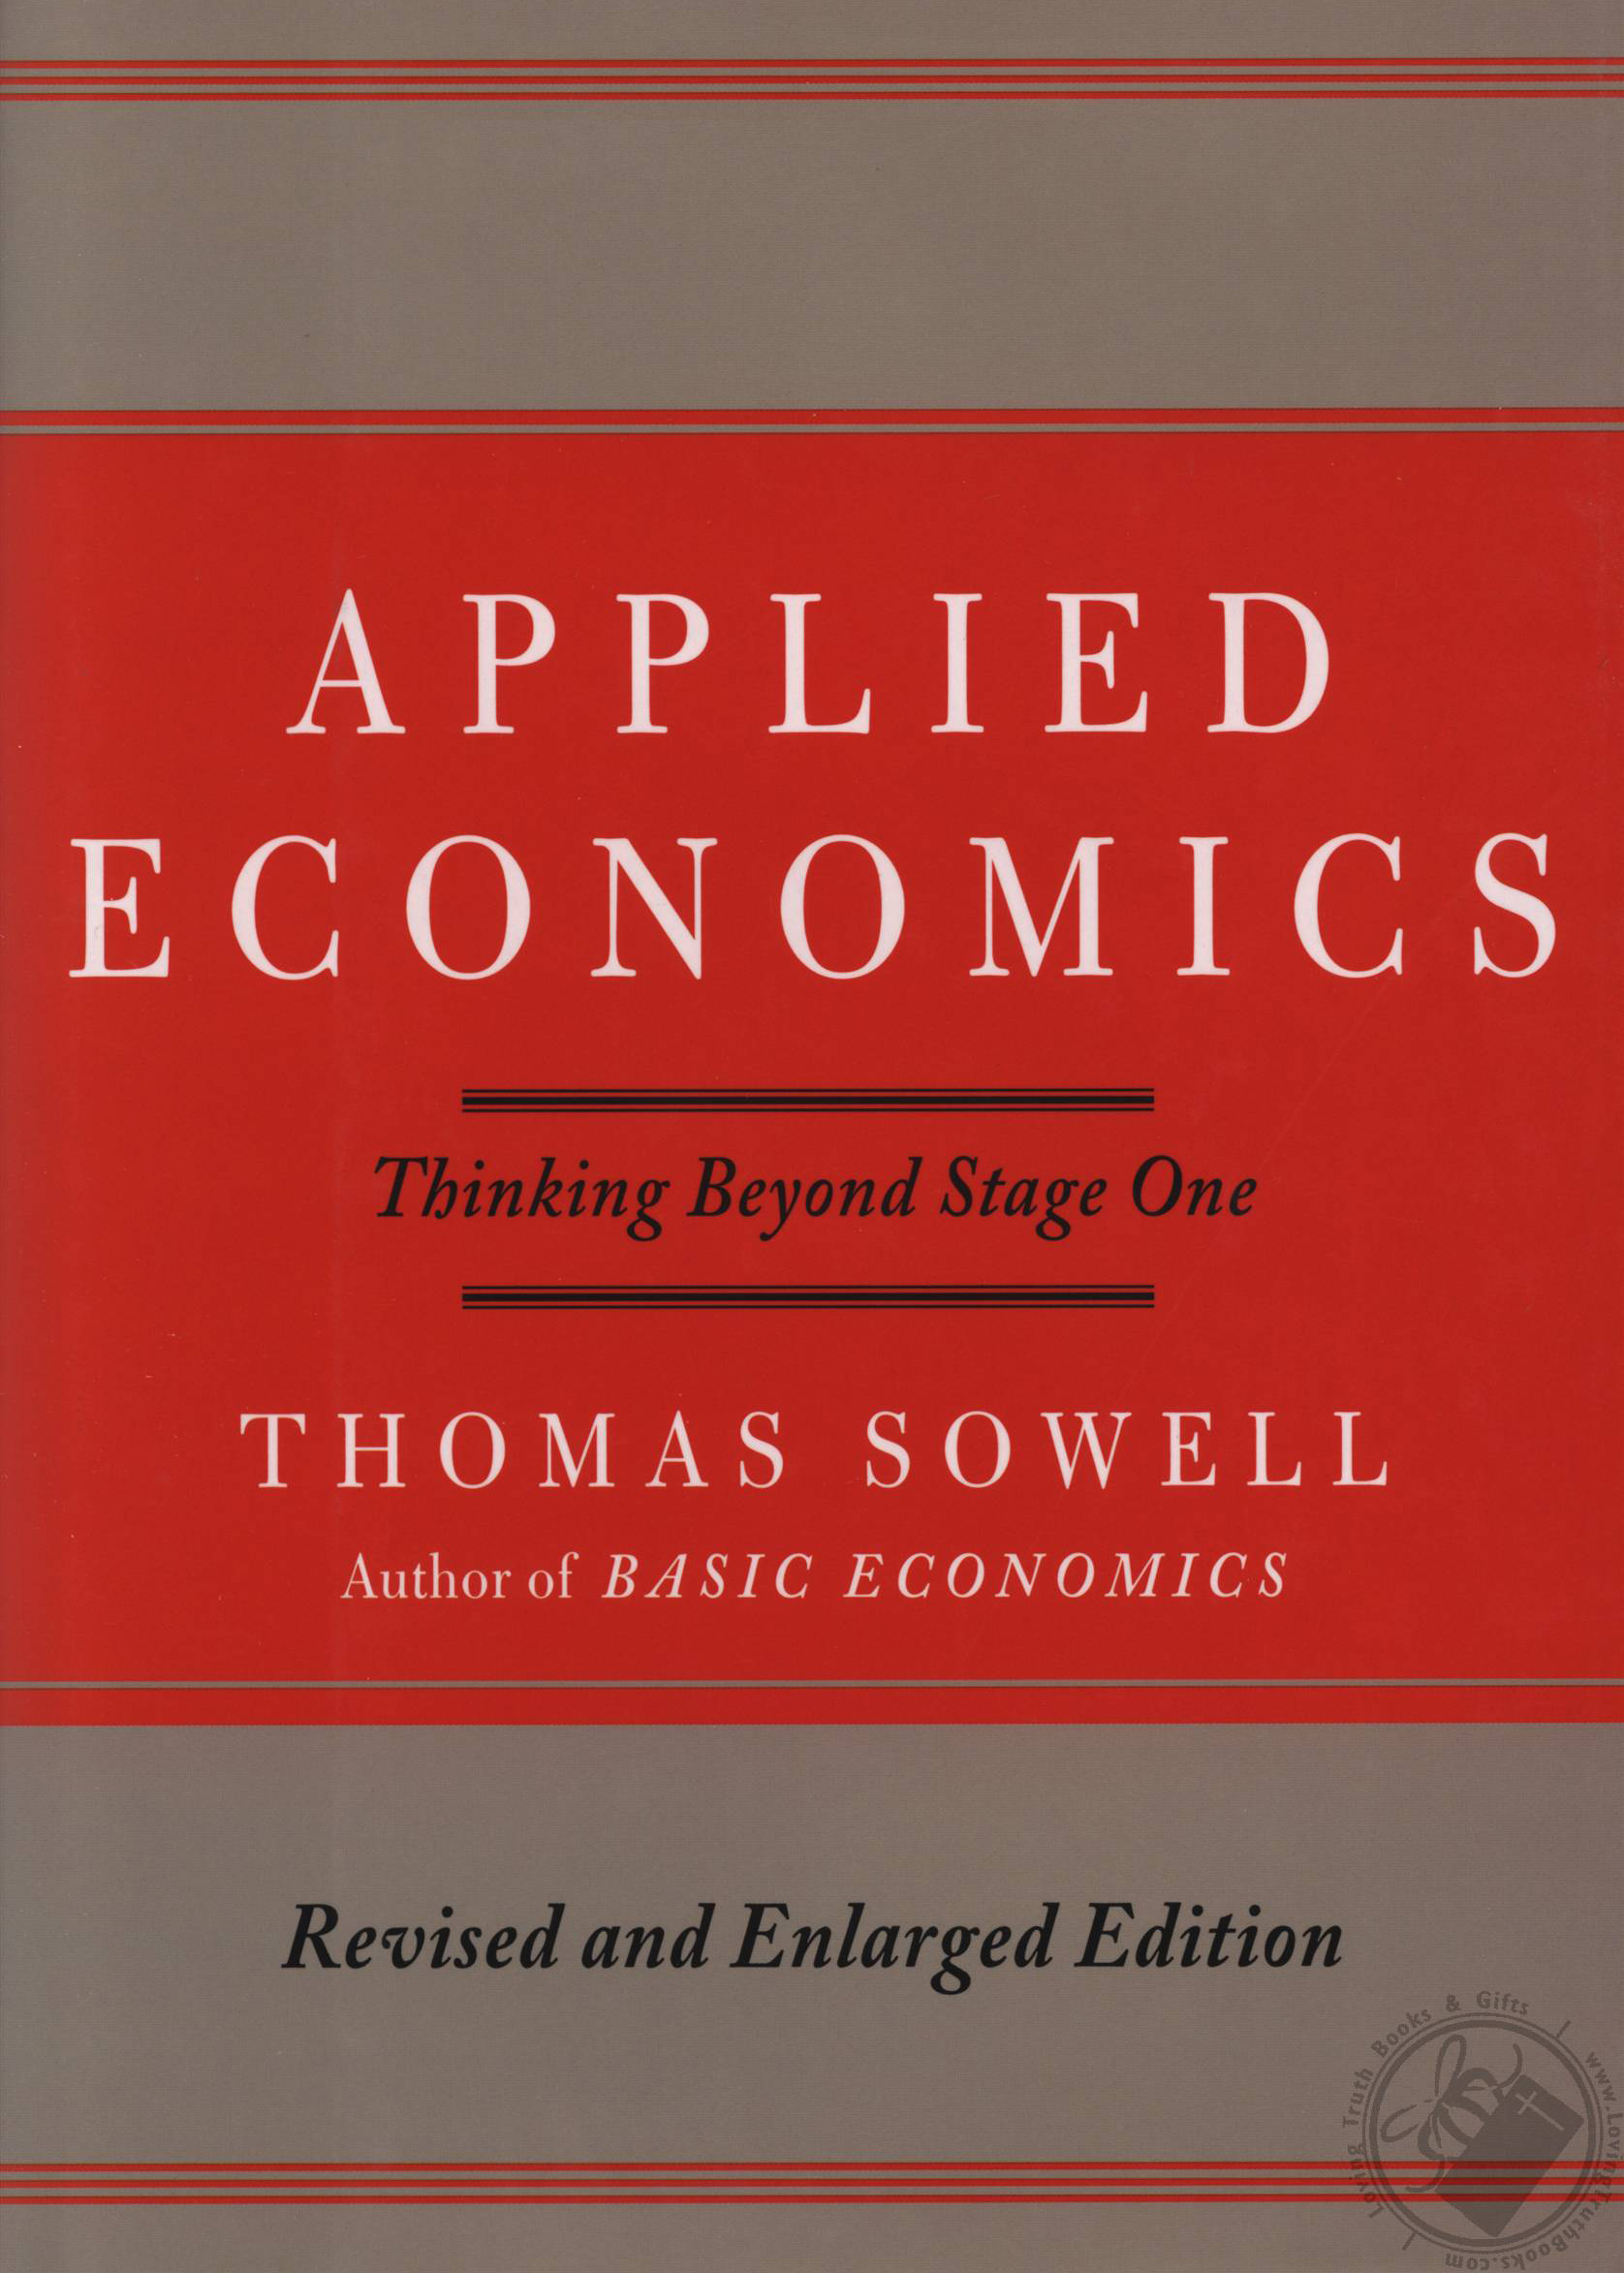 Sowell, Thomas - Applied Economics.jpg